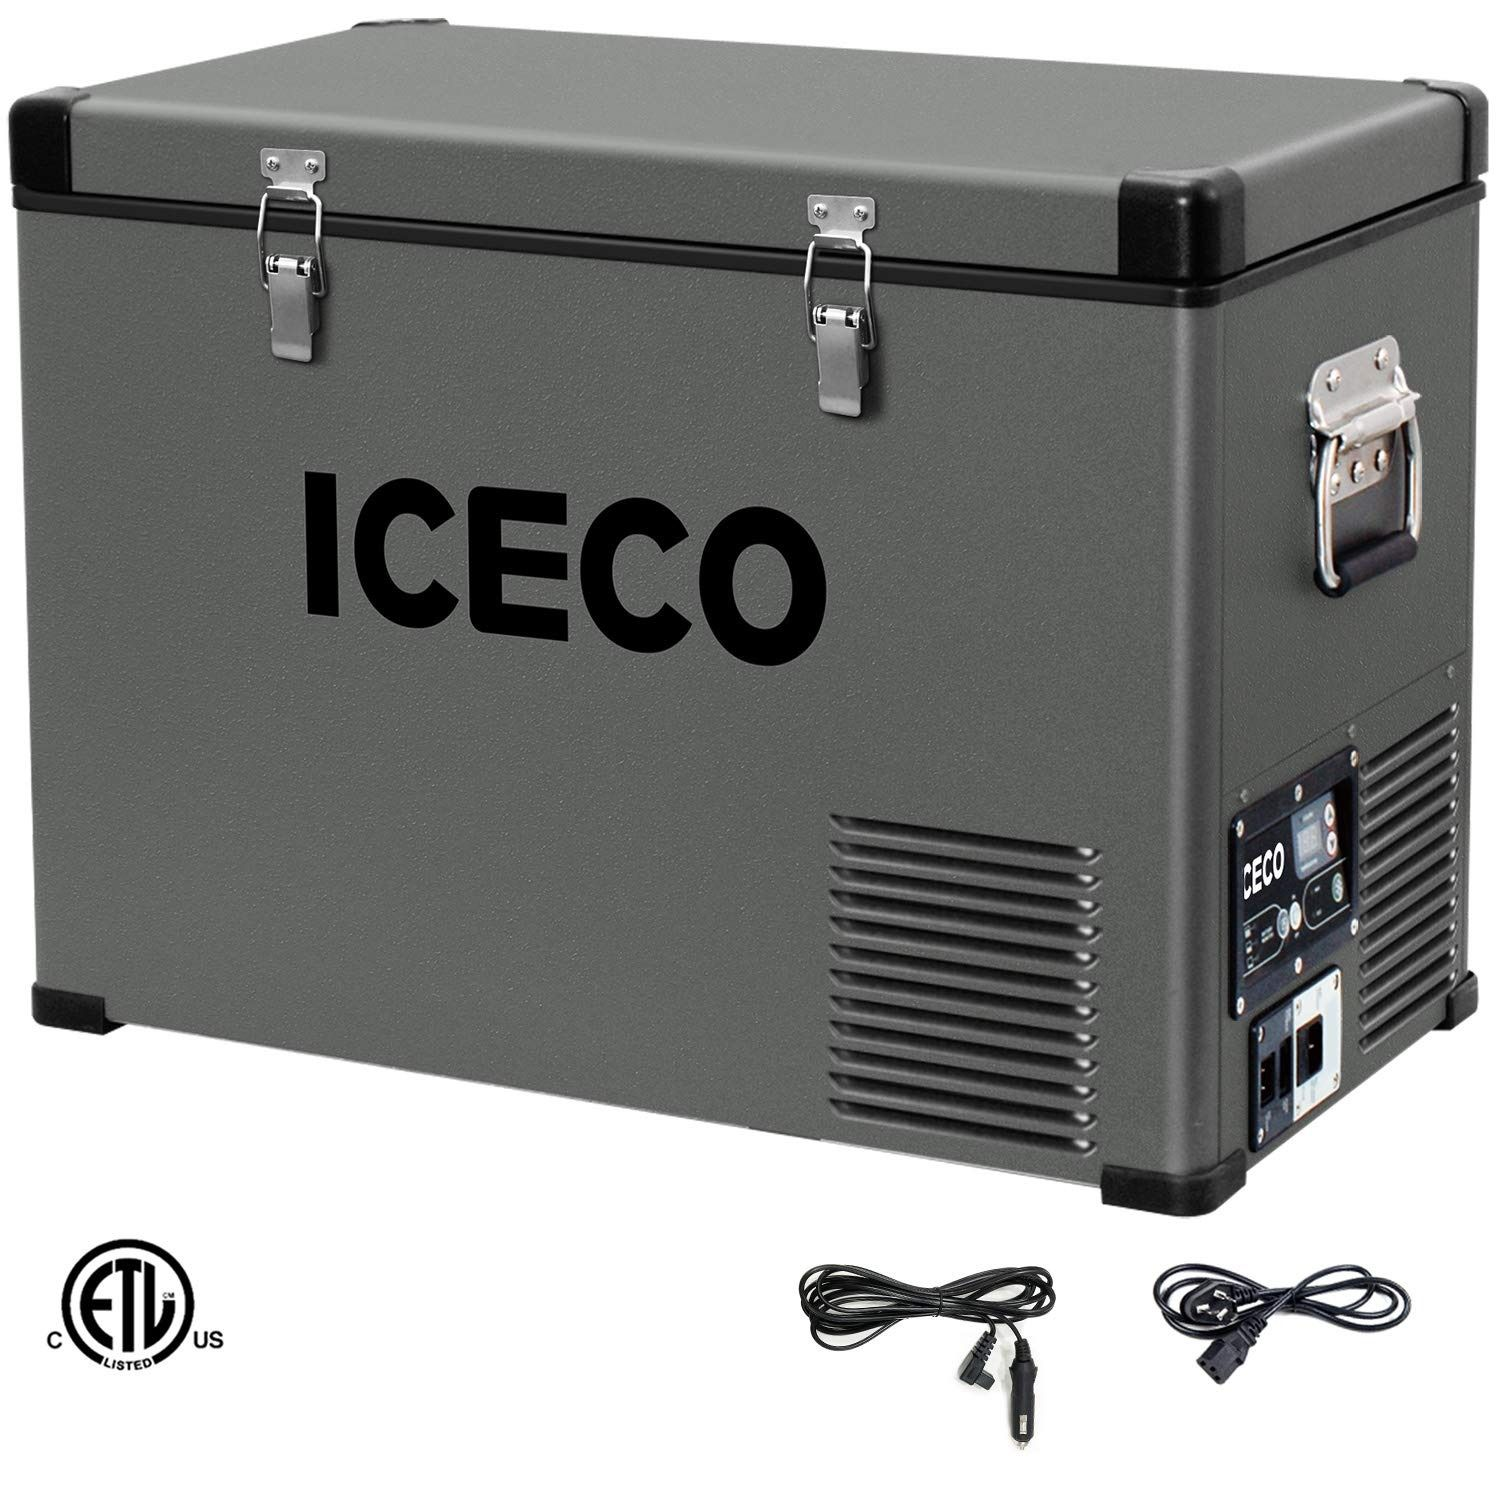 Iceco Vl45 Portable Refrigerator 12v Fridge Freezer With Secop Compressor 48 Quarts 45liters